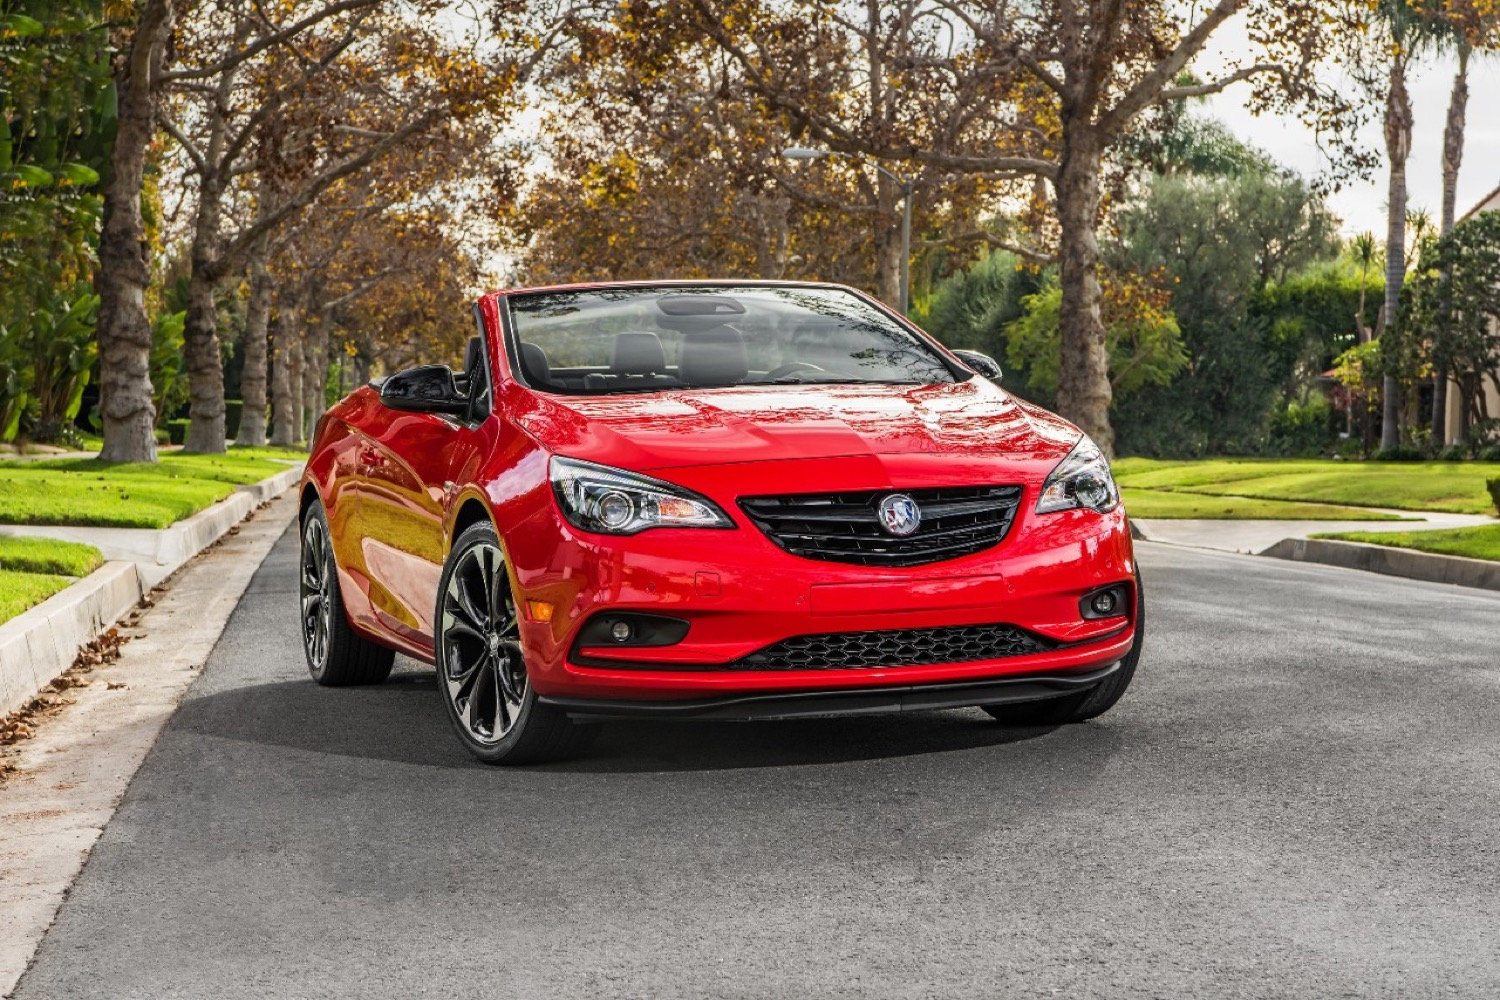 Buick Cascada Discount Cuts Price 16 Percent September 2019 2022 Buick Cascada Lease Deals, Engine, Exterior Colors